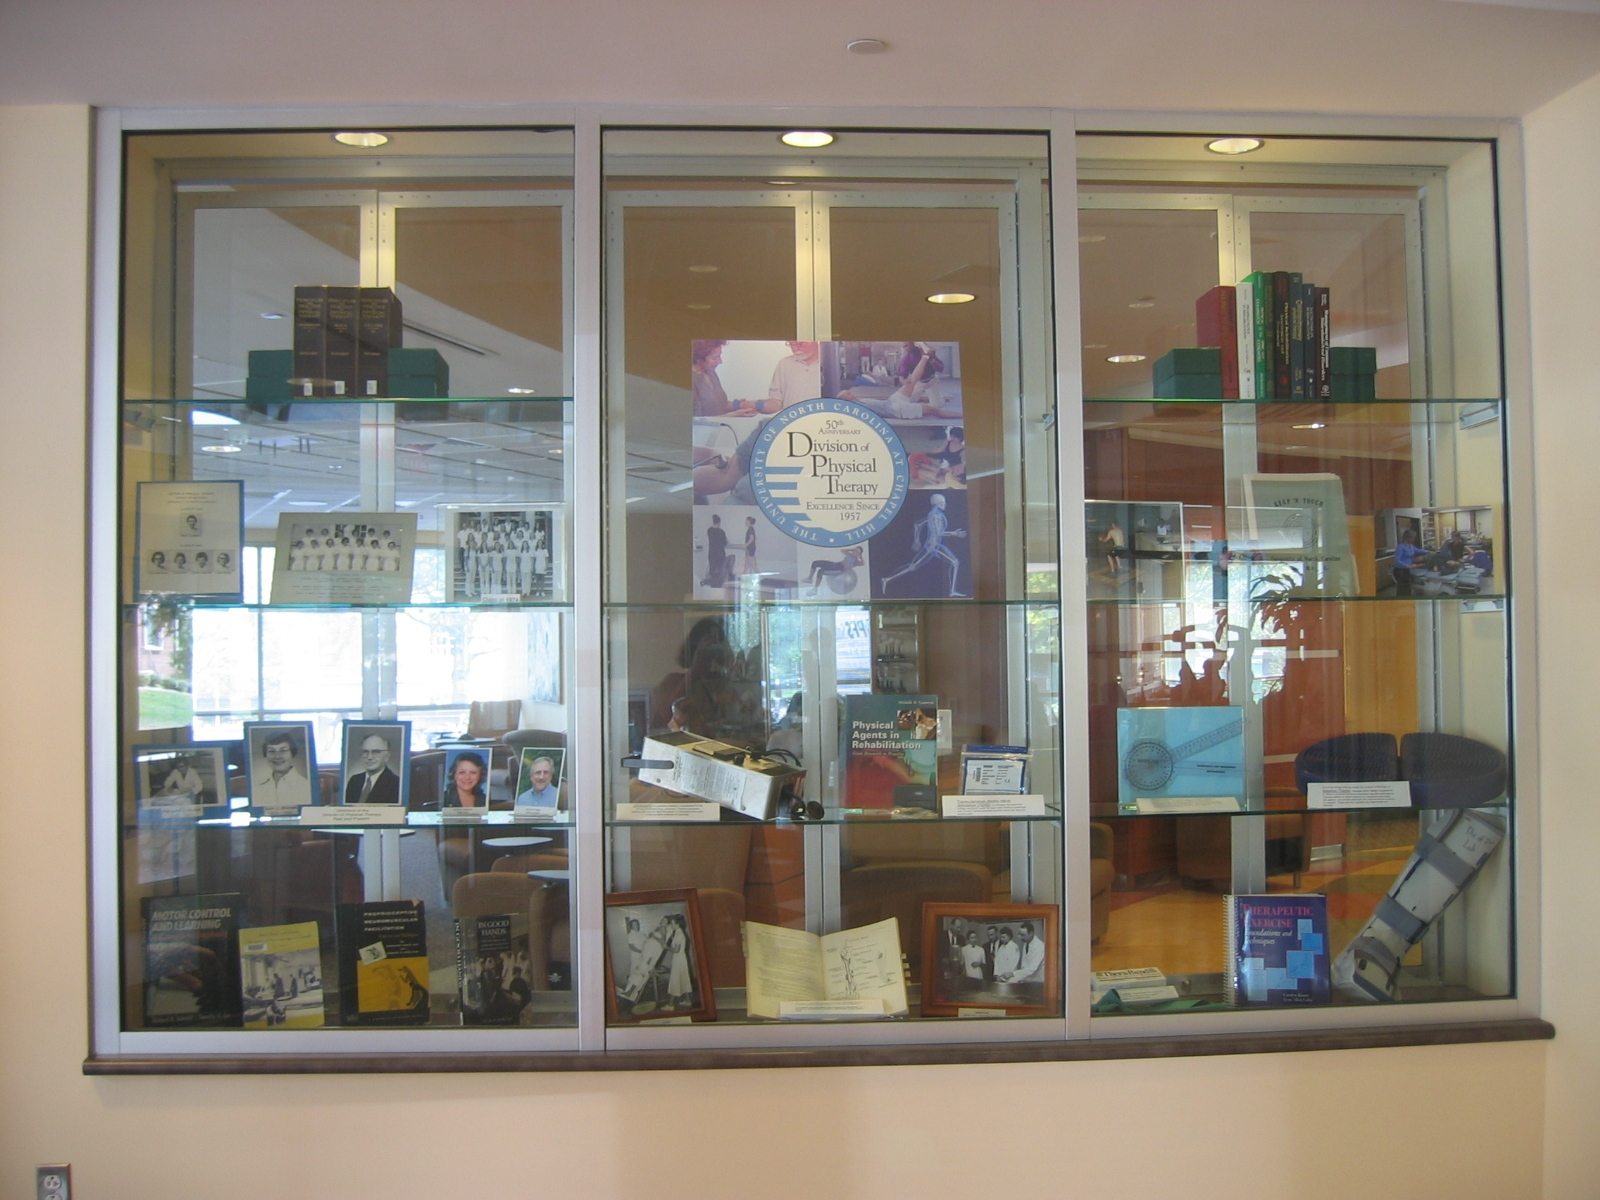 Division of Physical Therapy 40th Anniversary Exhibit Photo September 2007 – February 2008